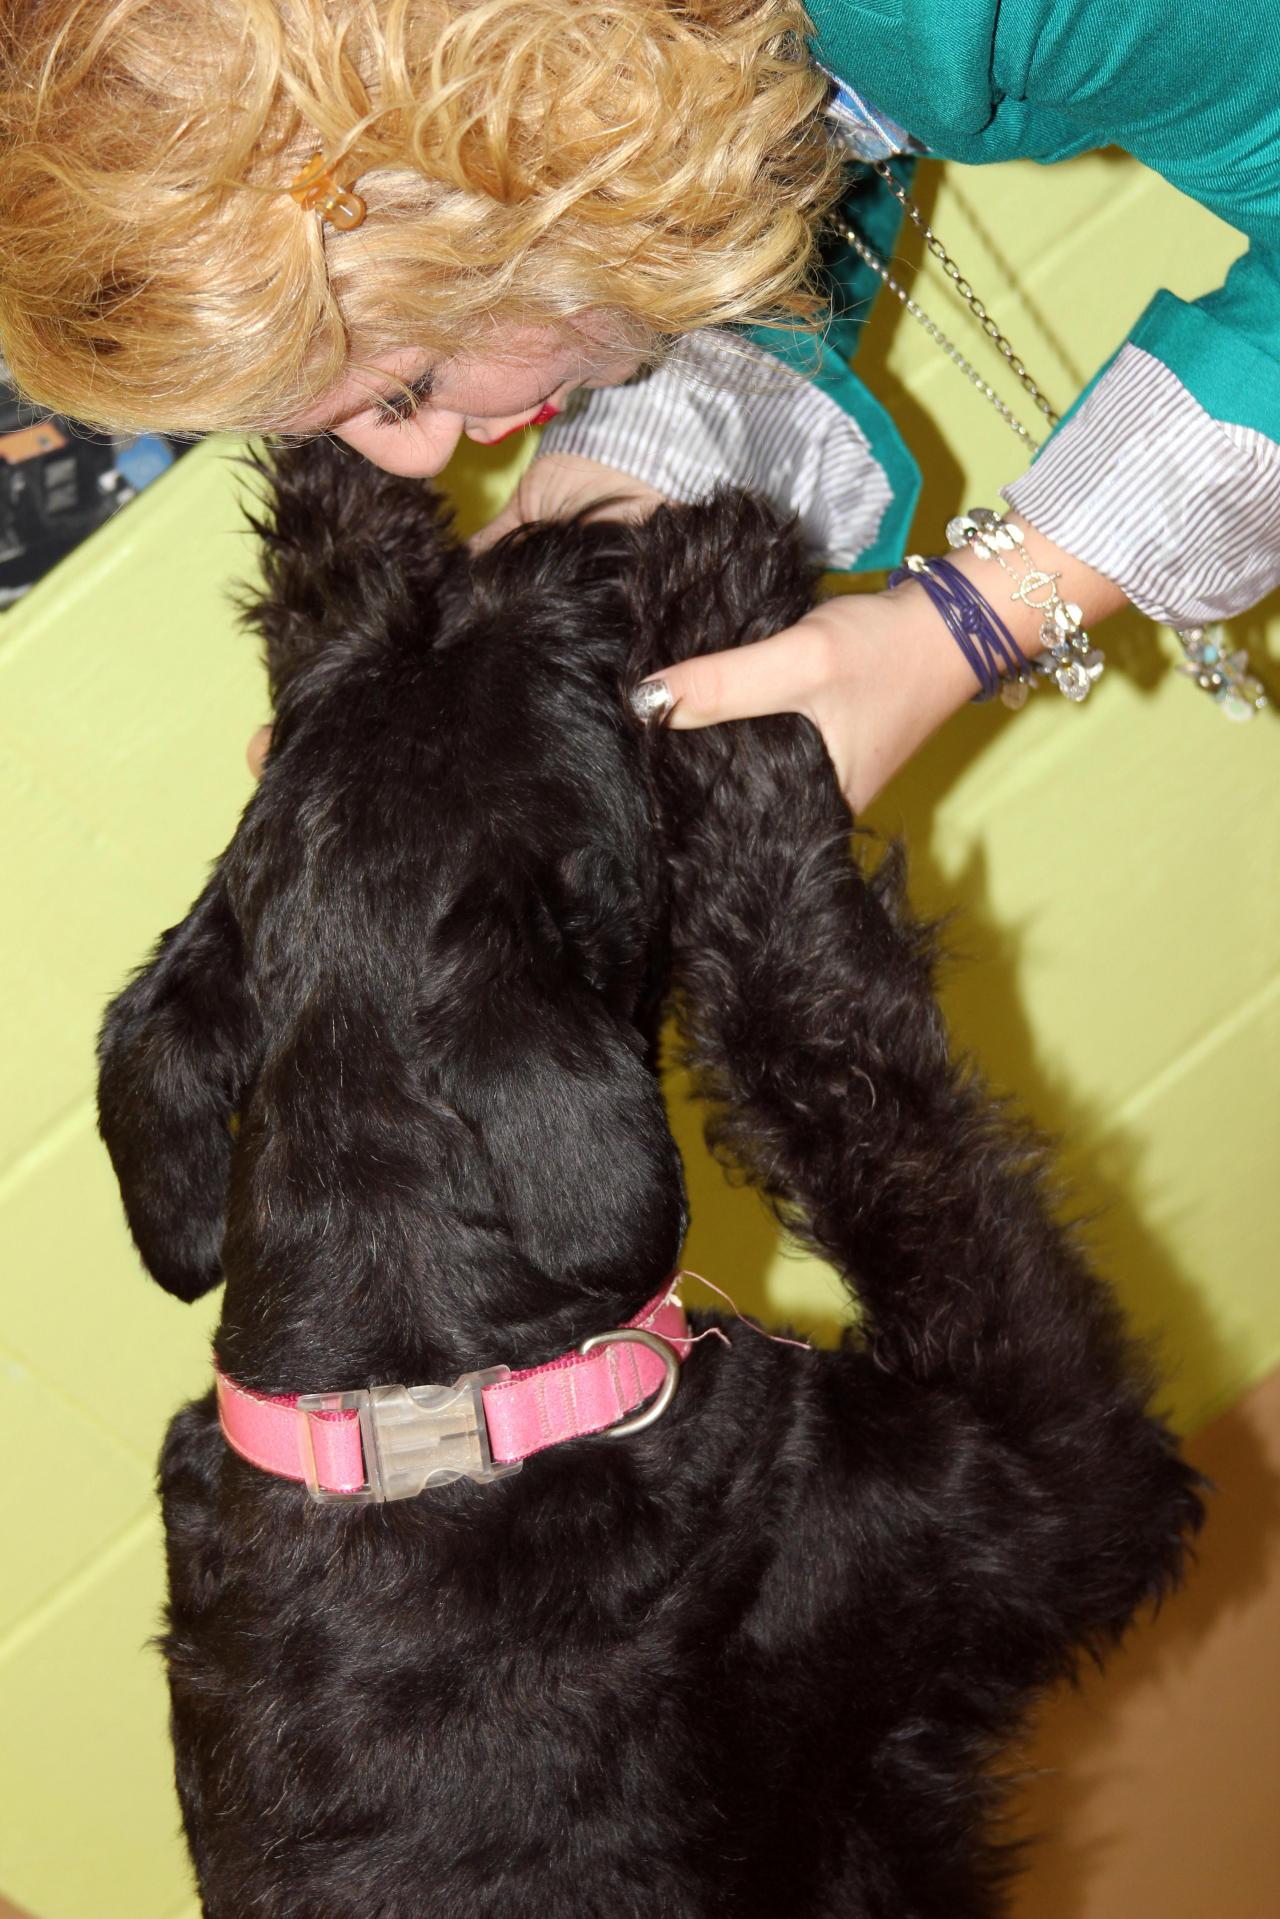 Love my Giant Schnauzer, Ziva! Sappy dog momma moment: Ziva holds the key to my heart:)